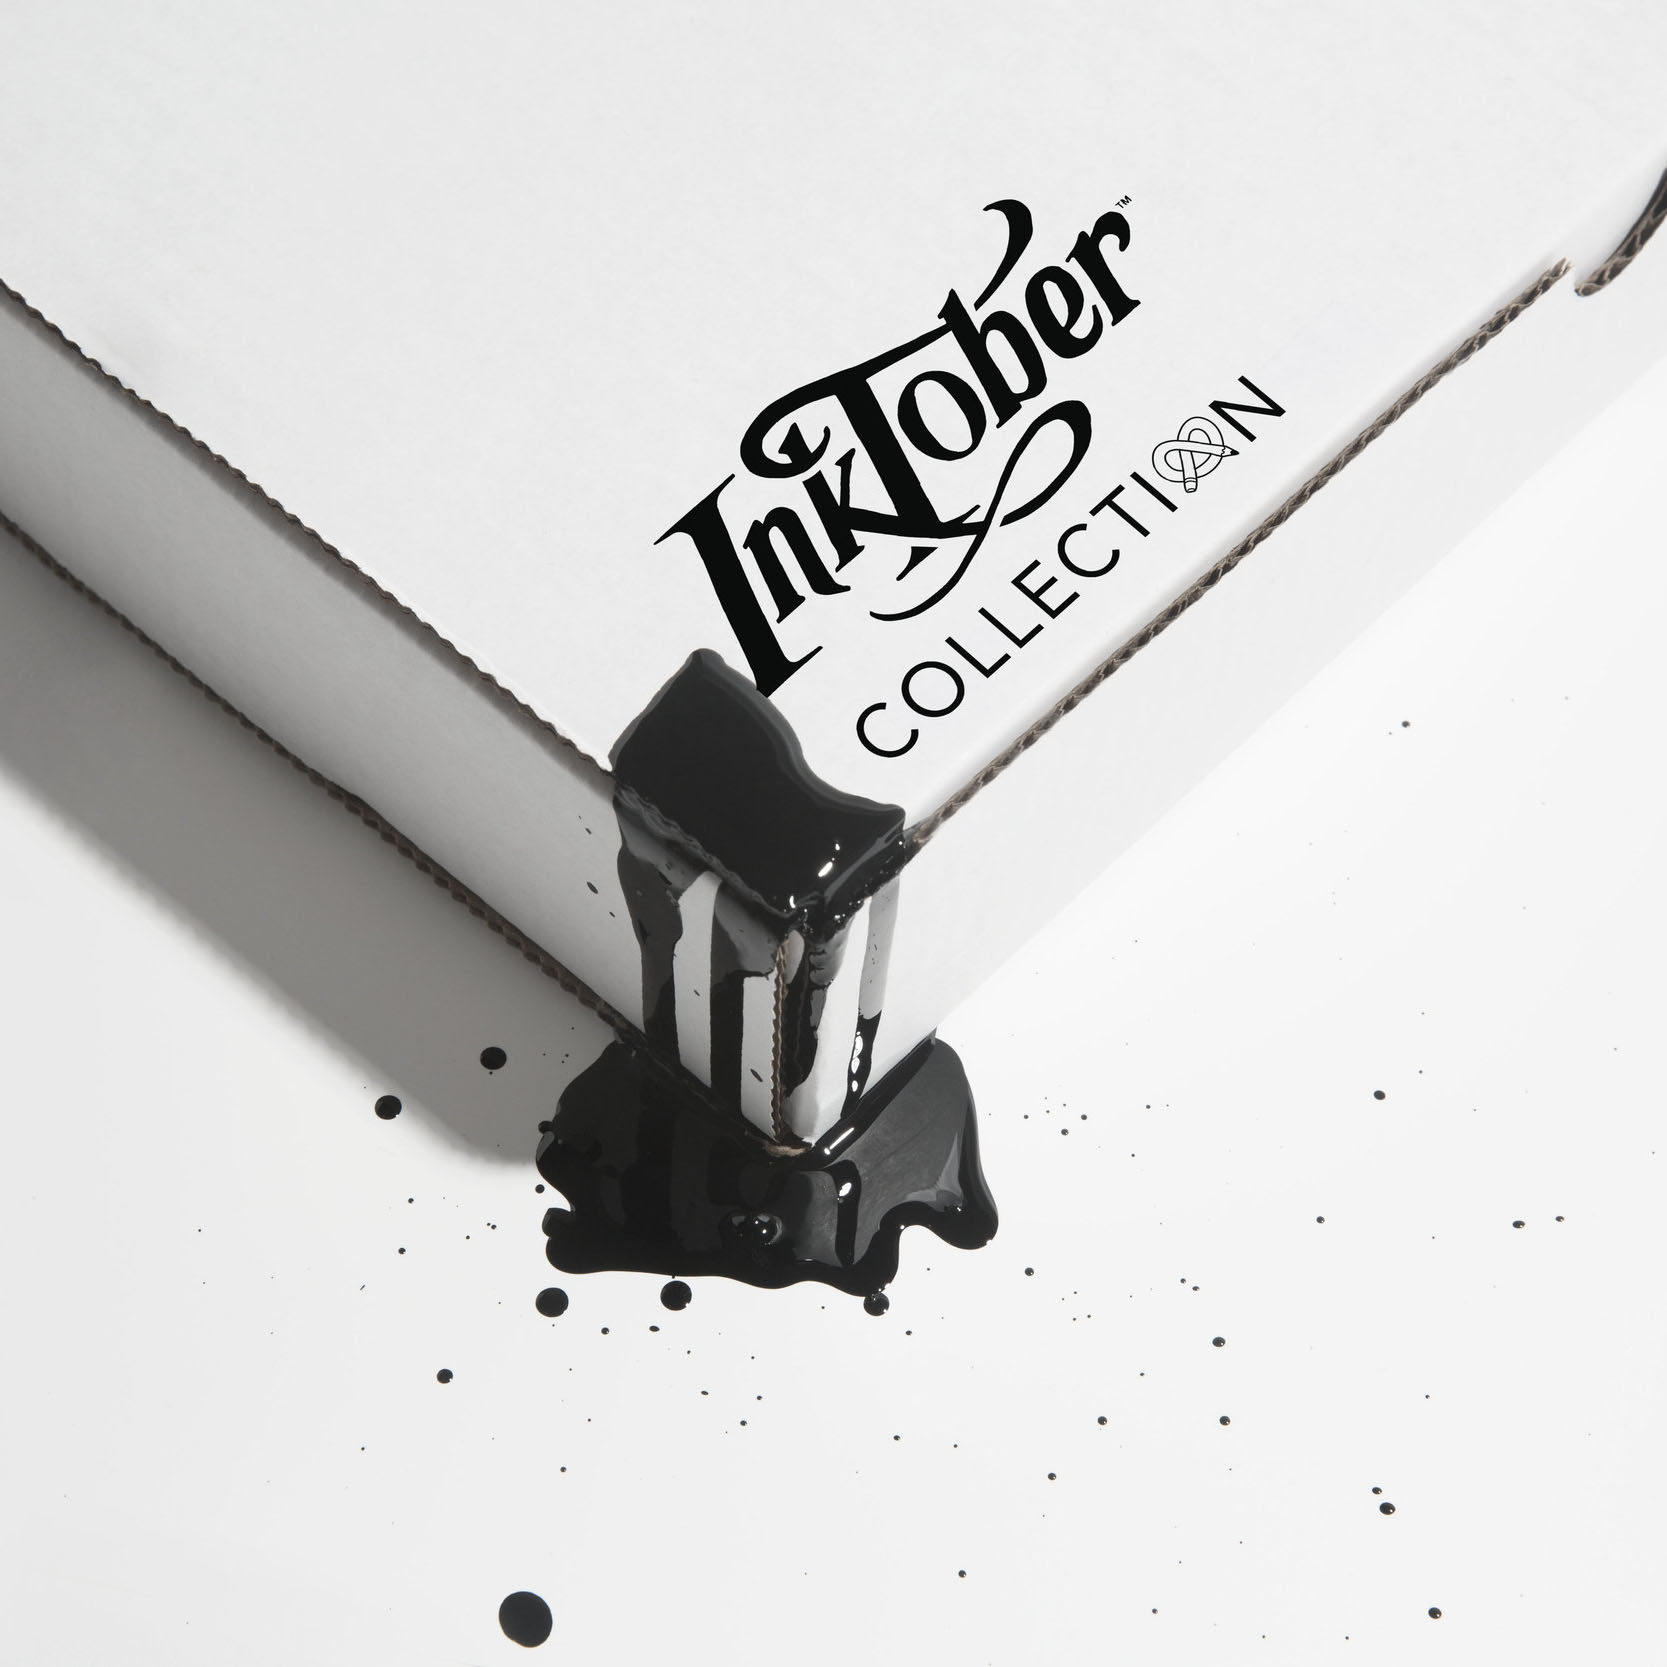 Fun Gear - Any old pen will do, but if you are interested in some fun gear, check out this collection put together by ArtSnacks.